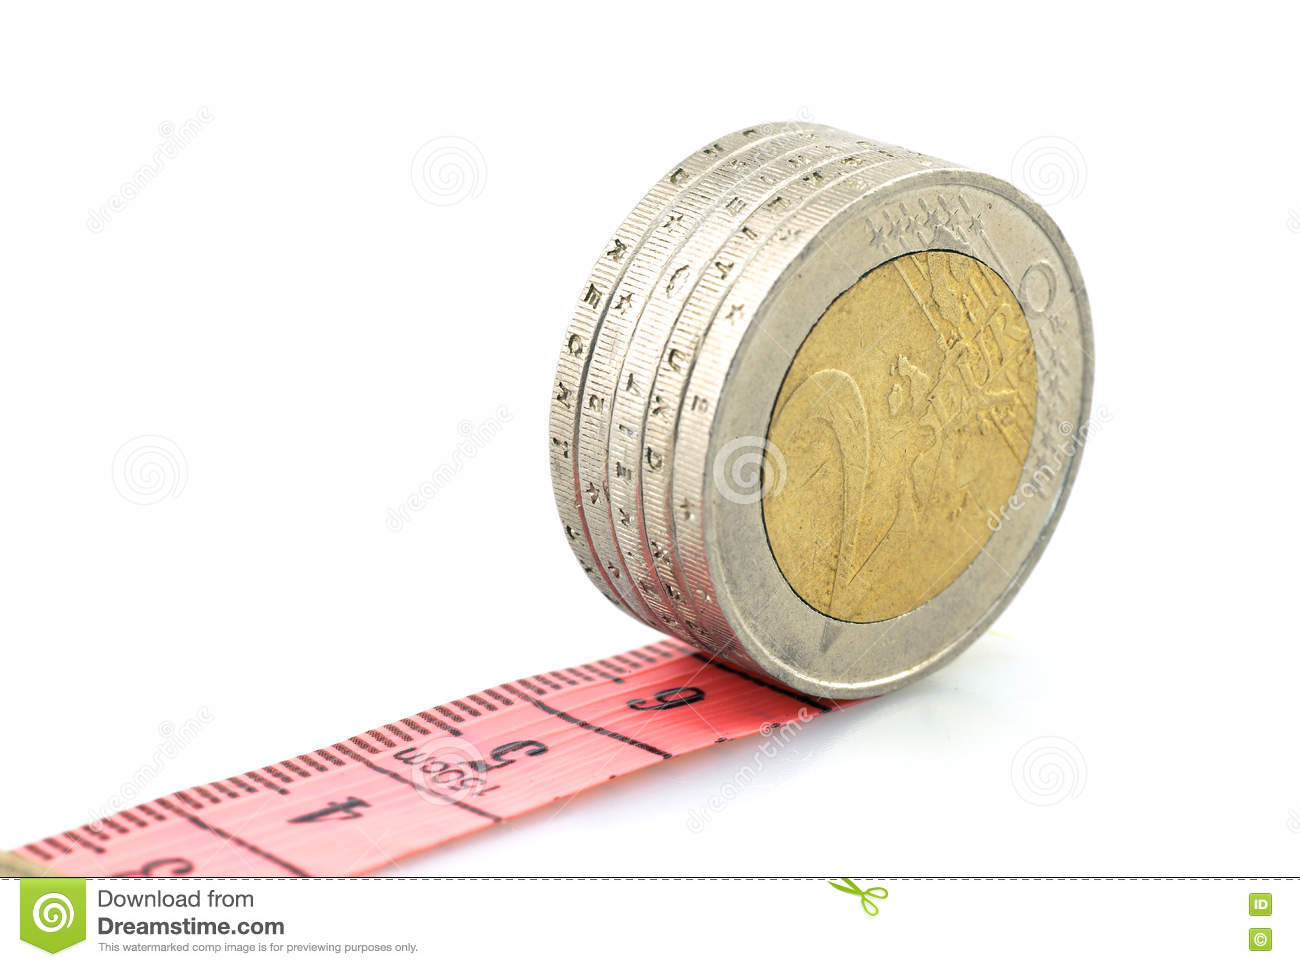 Euro coins running on red ruler